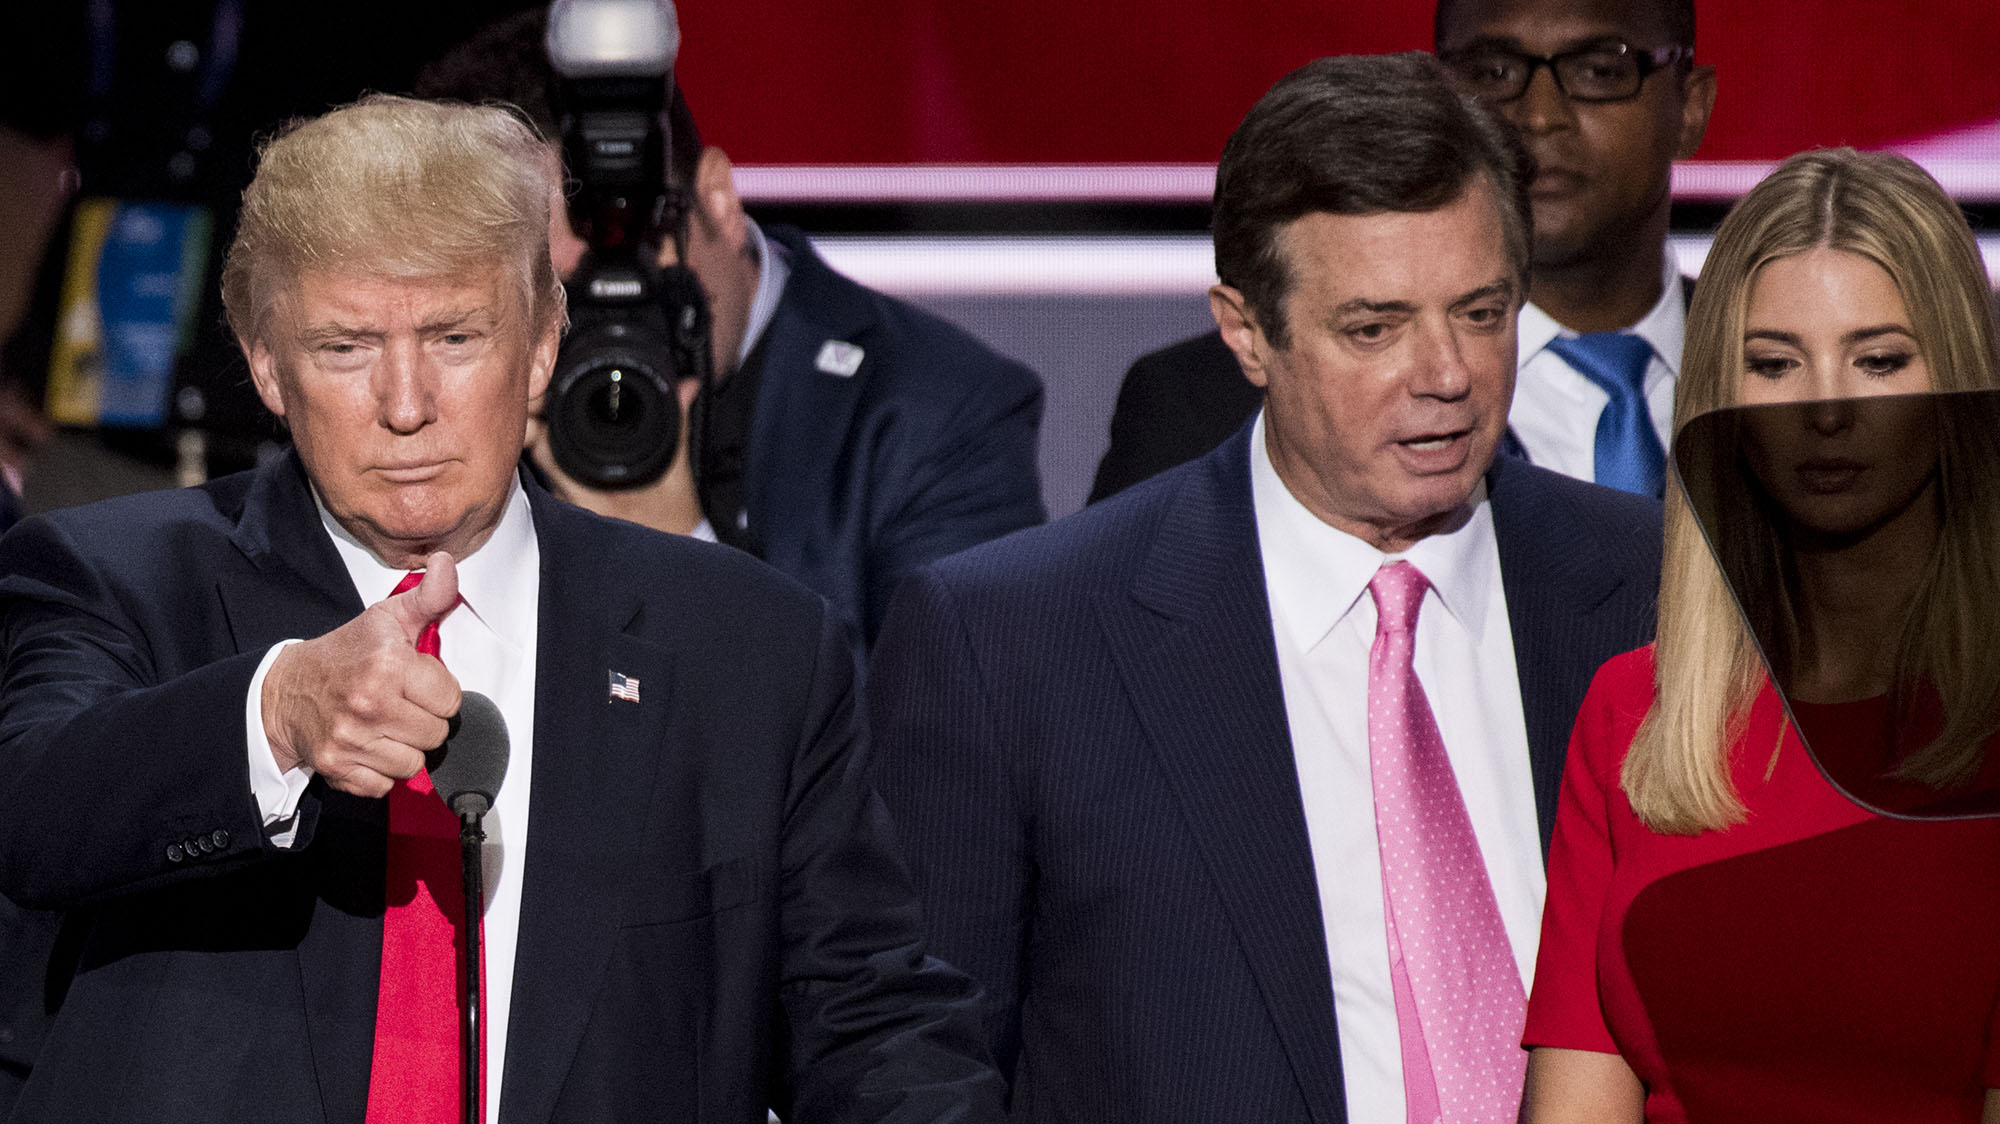 Paul Manafort, former Trump campaign chairman, was wiretapped by U.S.  government